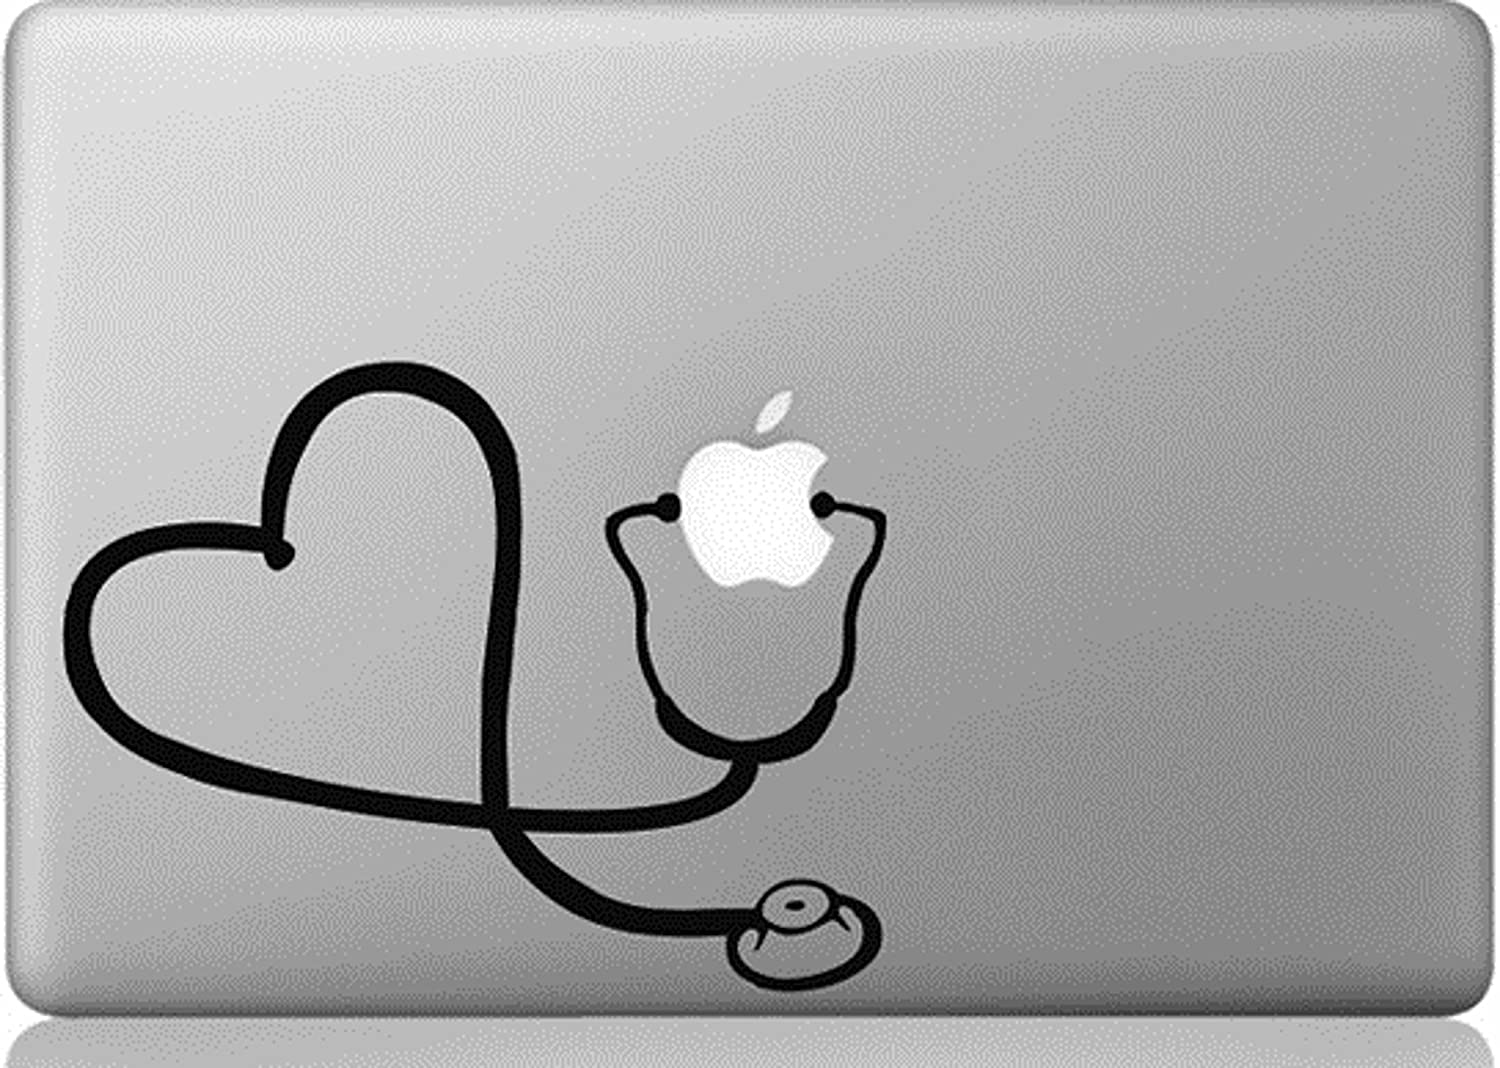 Stethoscope Heart Decal Sticker for Laptop Computer Car Truck Phone